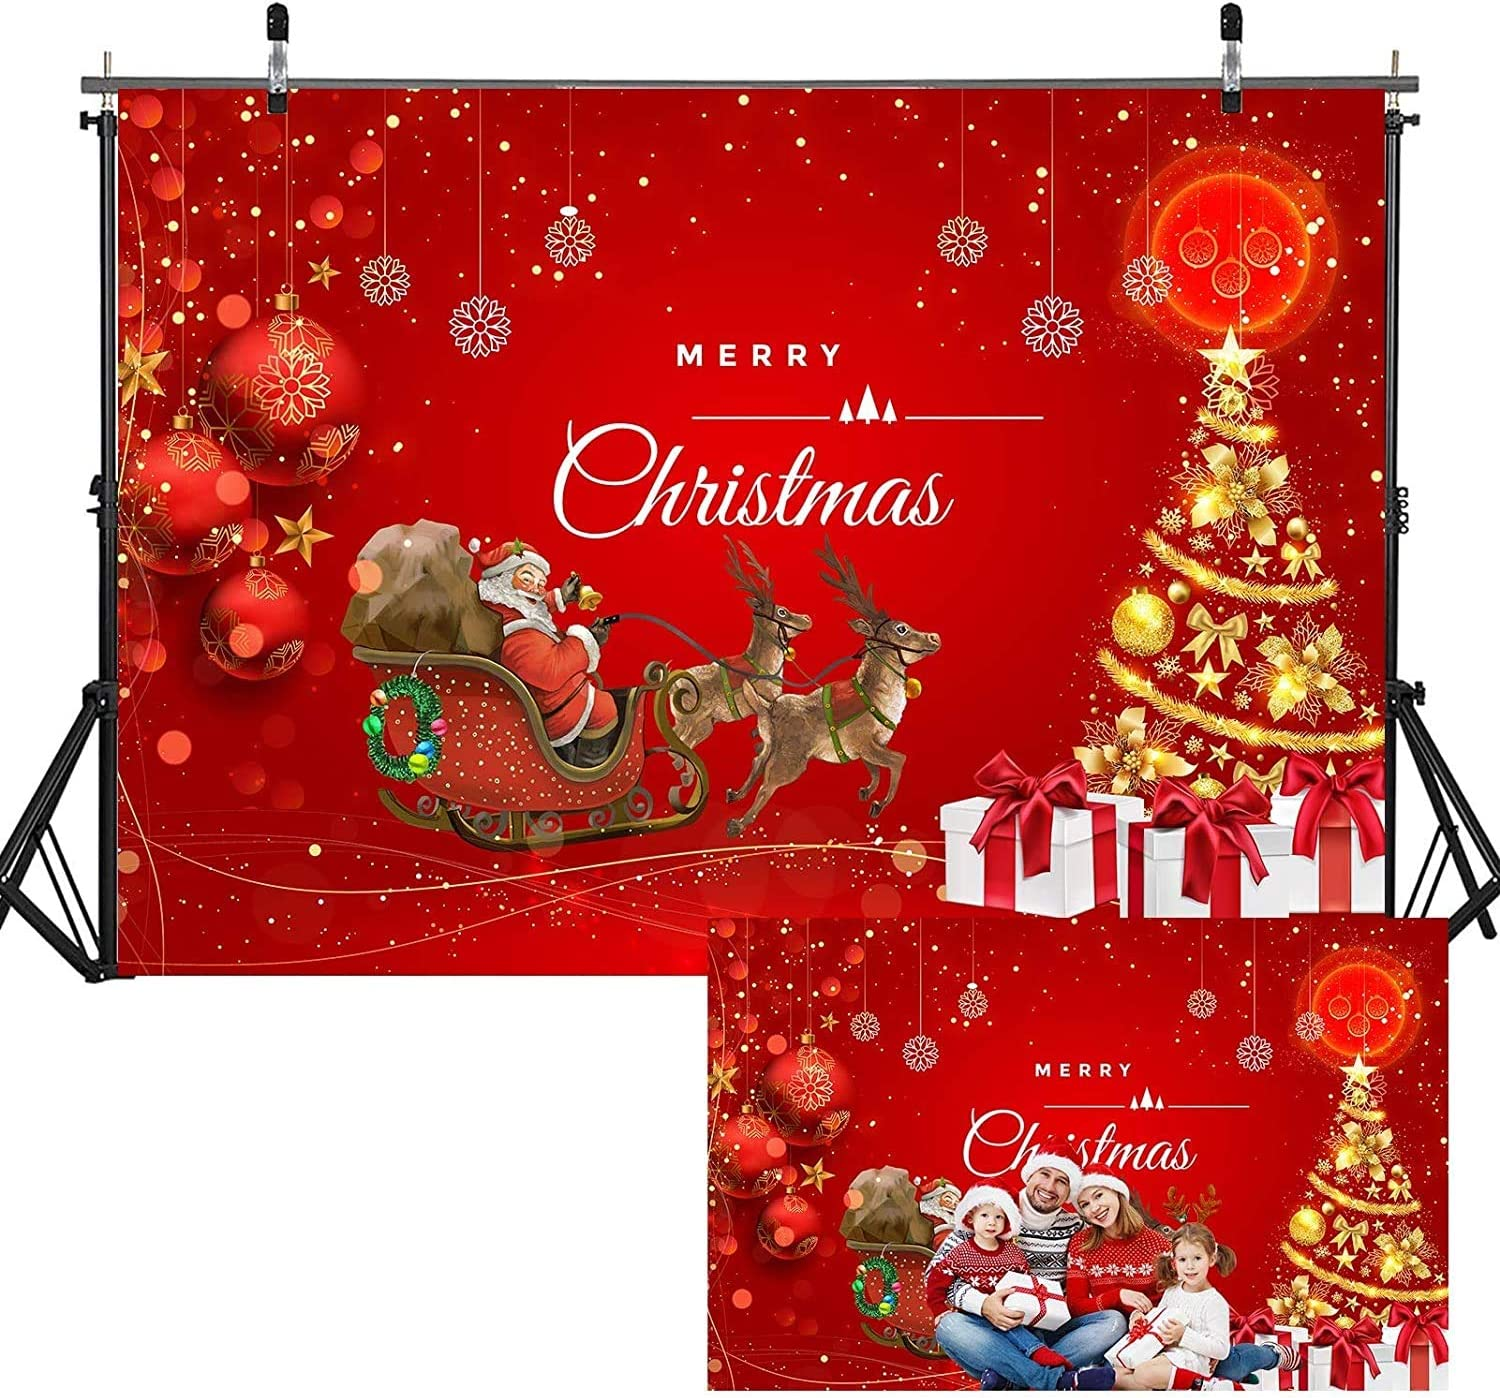 Teblacker 7.7ftx5ft Christmas Backdrop Xmas Home Decor Photography Santa Themed Christmas Tree Gift Decorations for Xmas Party Supplies Background Pictures Banner Photo Studio Decor Booth Props